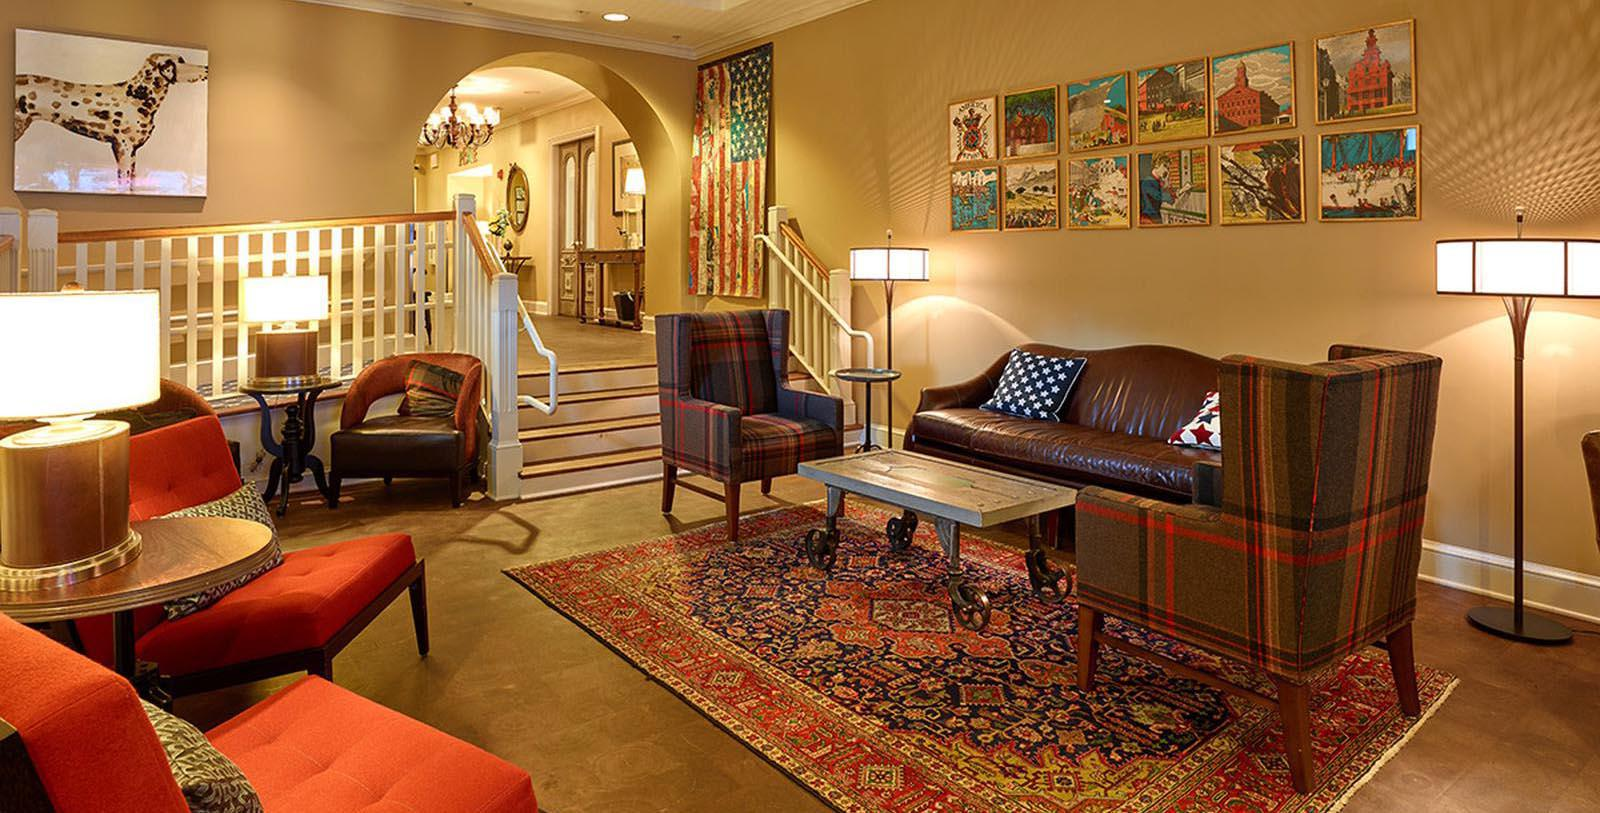 Image of Seating Area The Kendall Hotel, 1894, Member of Historic Hotels of America, in Cambridge, Massachusetts, Special Offers, Discounted Rates, Families, Romantic Escape, Honeymoons, Anniversaries, Reunions